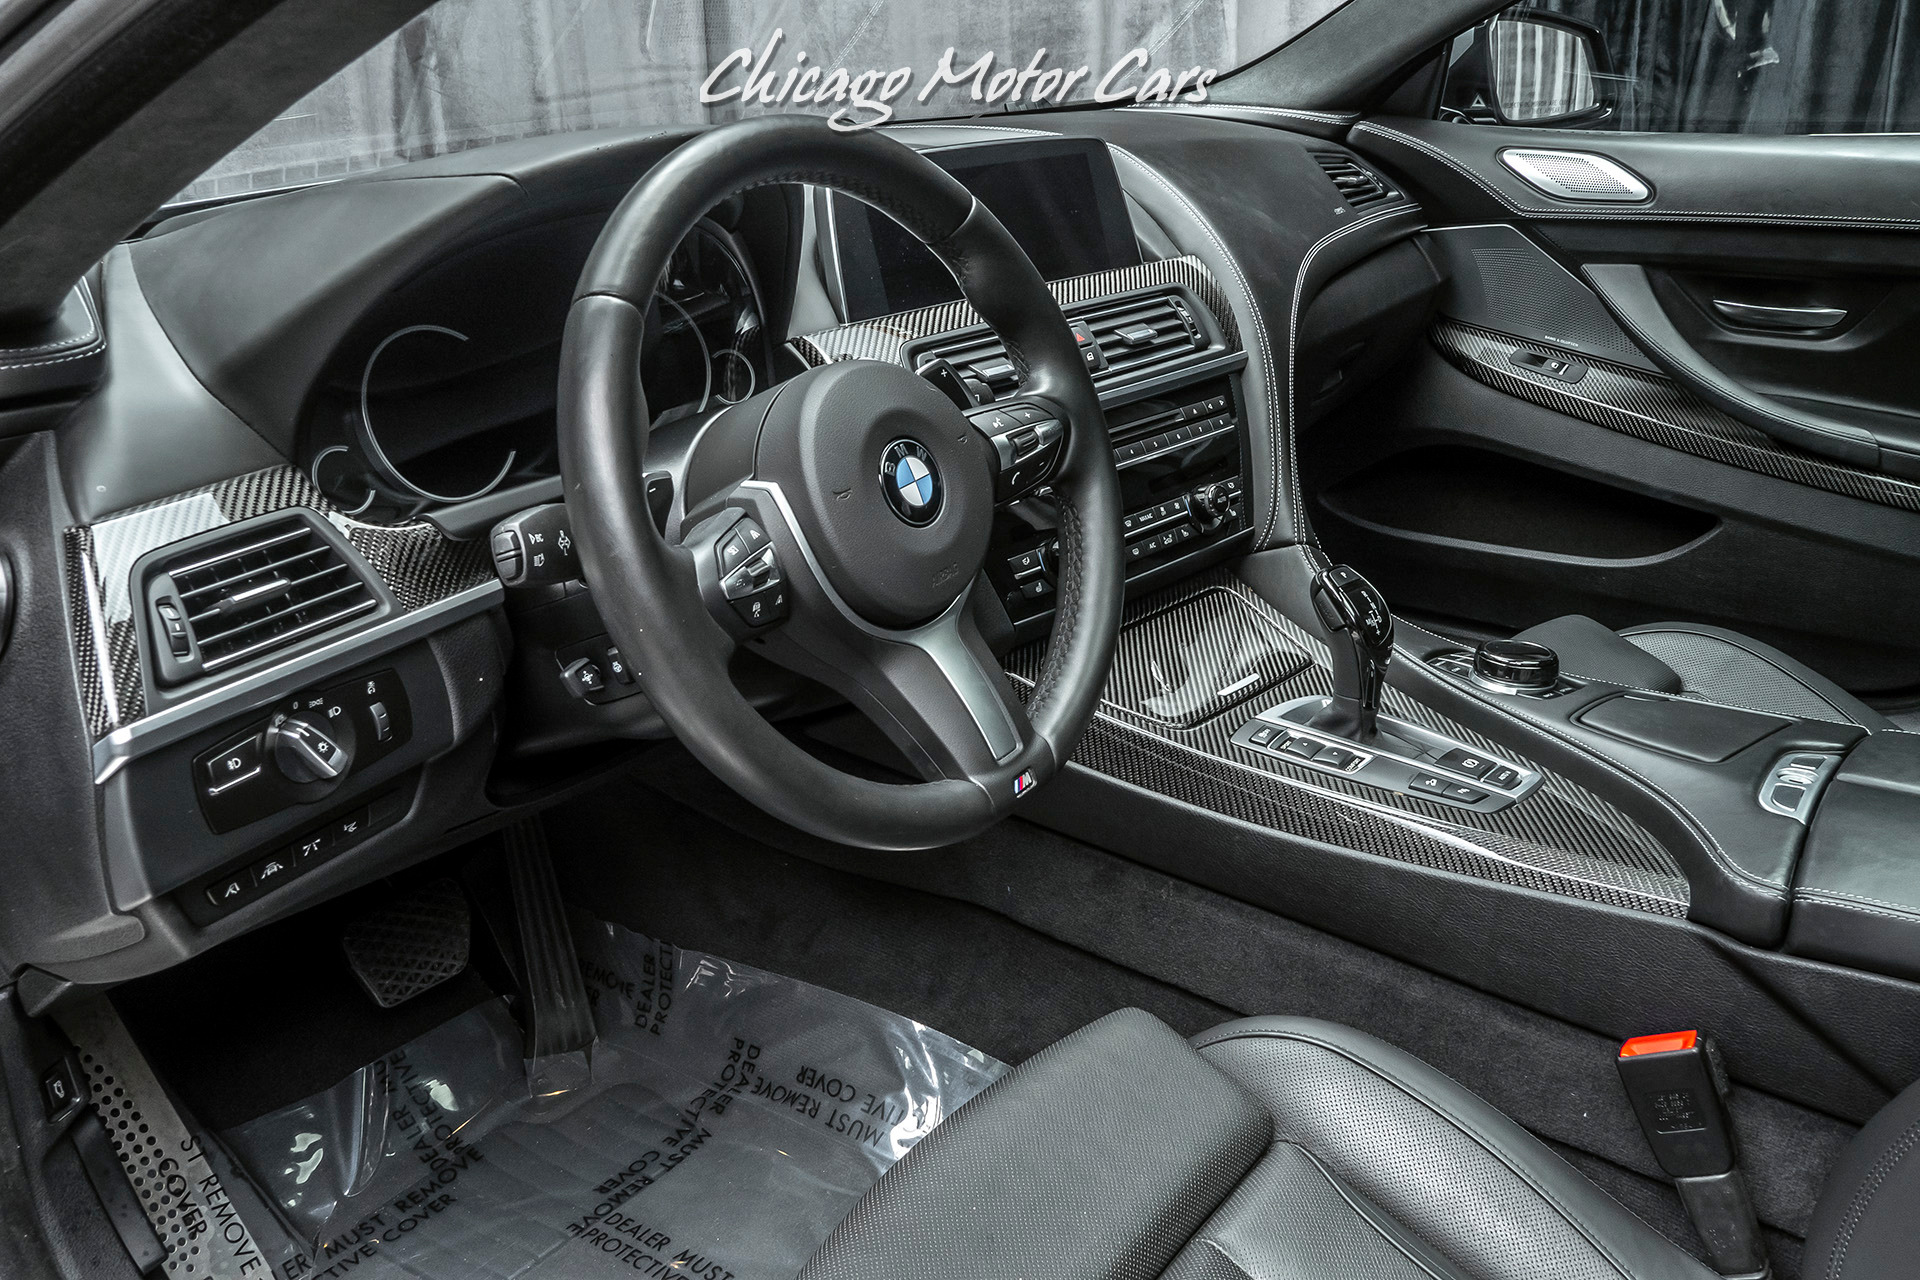 Used 2018 Bmw 650i Xdrive Gran Coupe Msrp 110k M Sport Edition For Sale Special Pricing Chicago Motor Cars Stock 16380